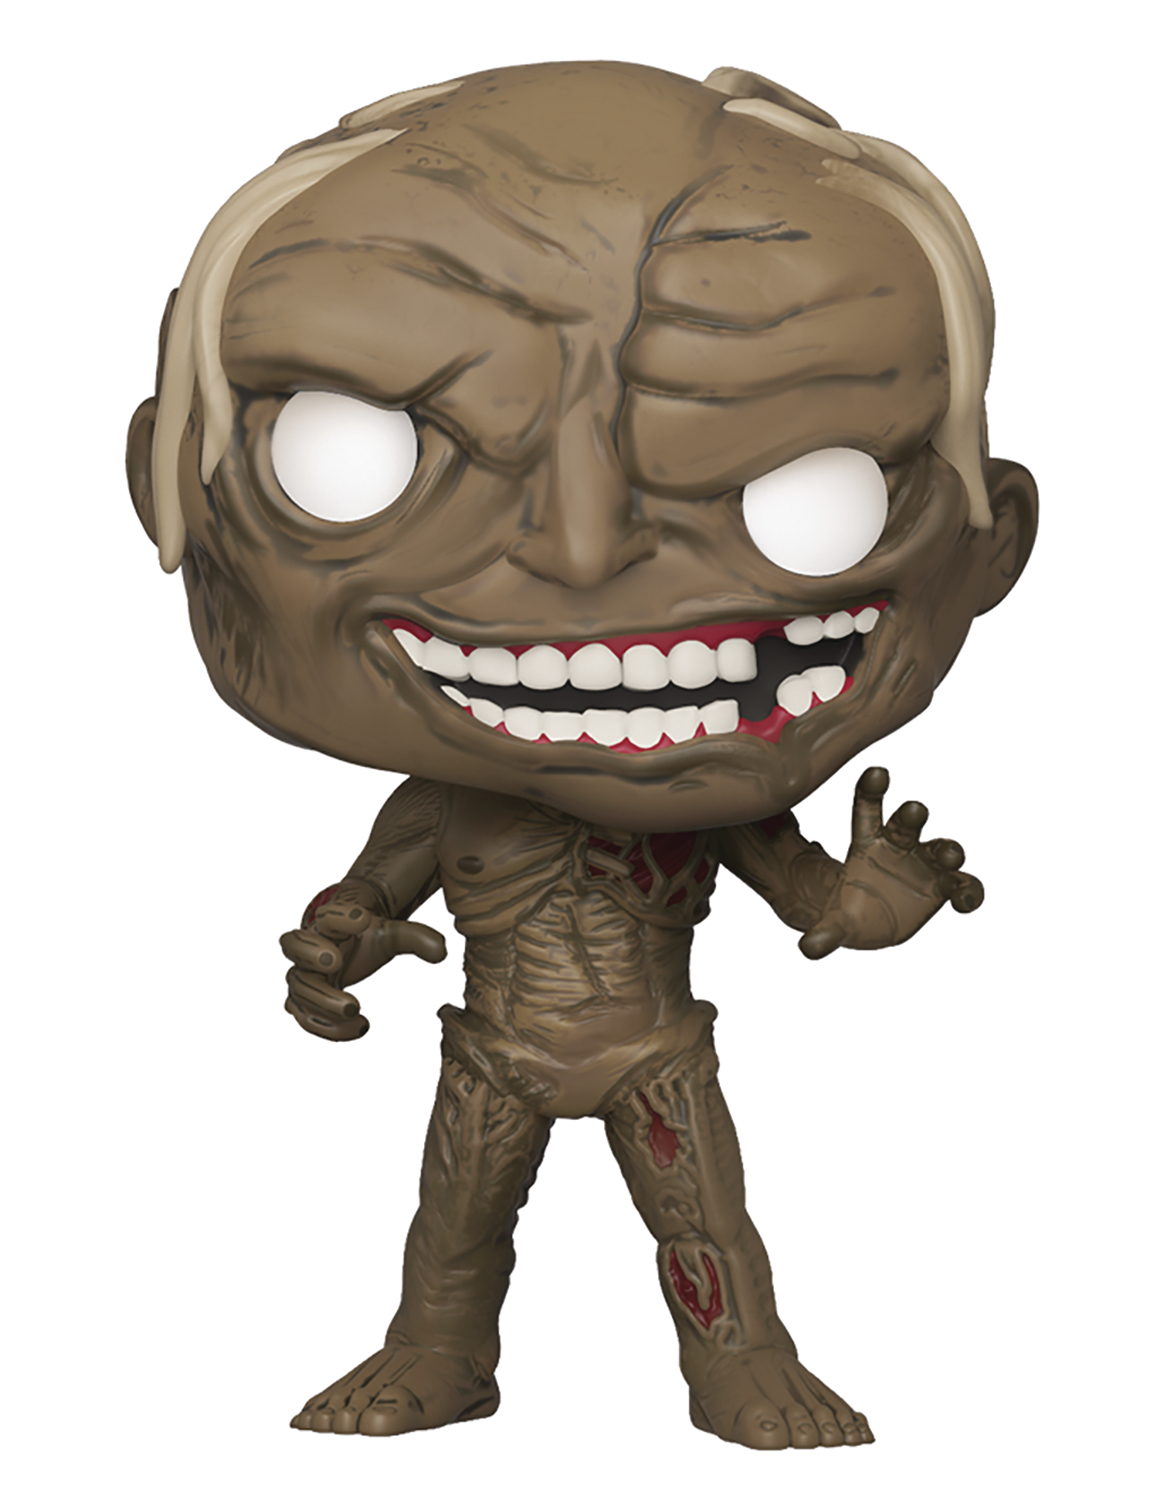 POP MOVIES SCARY STORIES JANGLY MAN VIN FIG